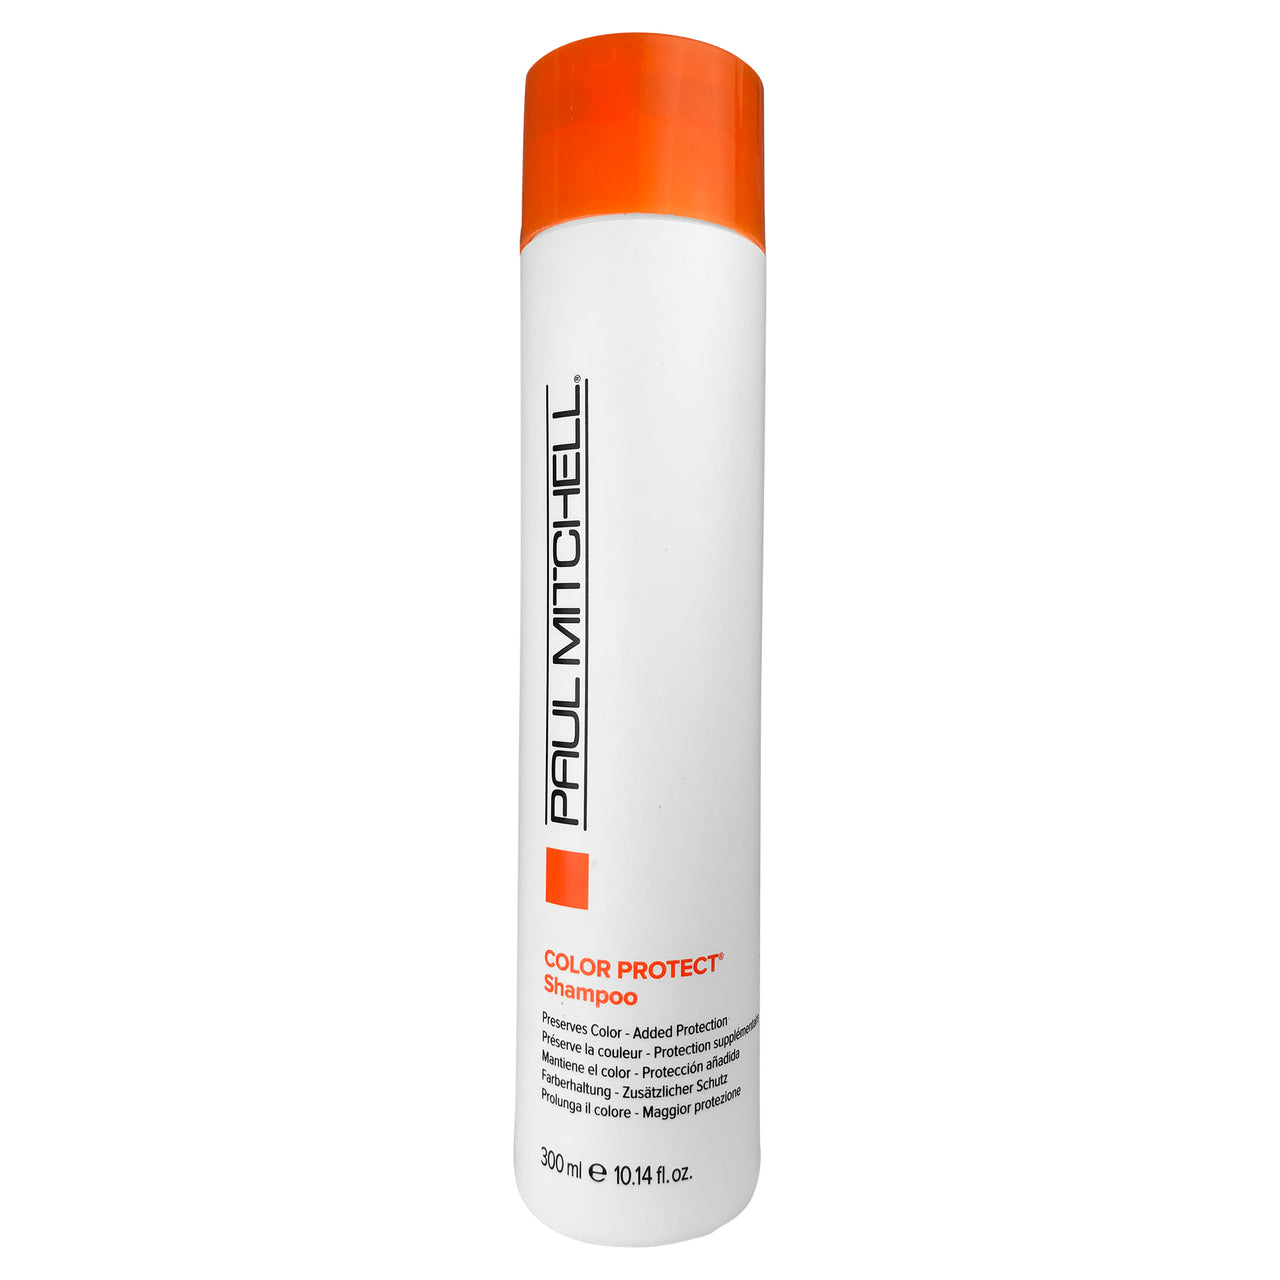 Paul Mitchell Color Protect Shampoo 10.14 oz